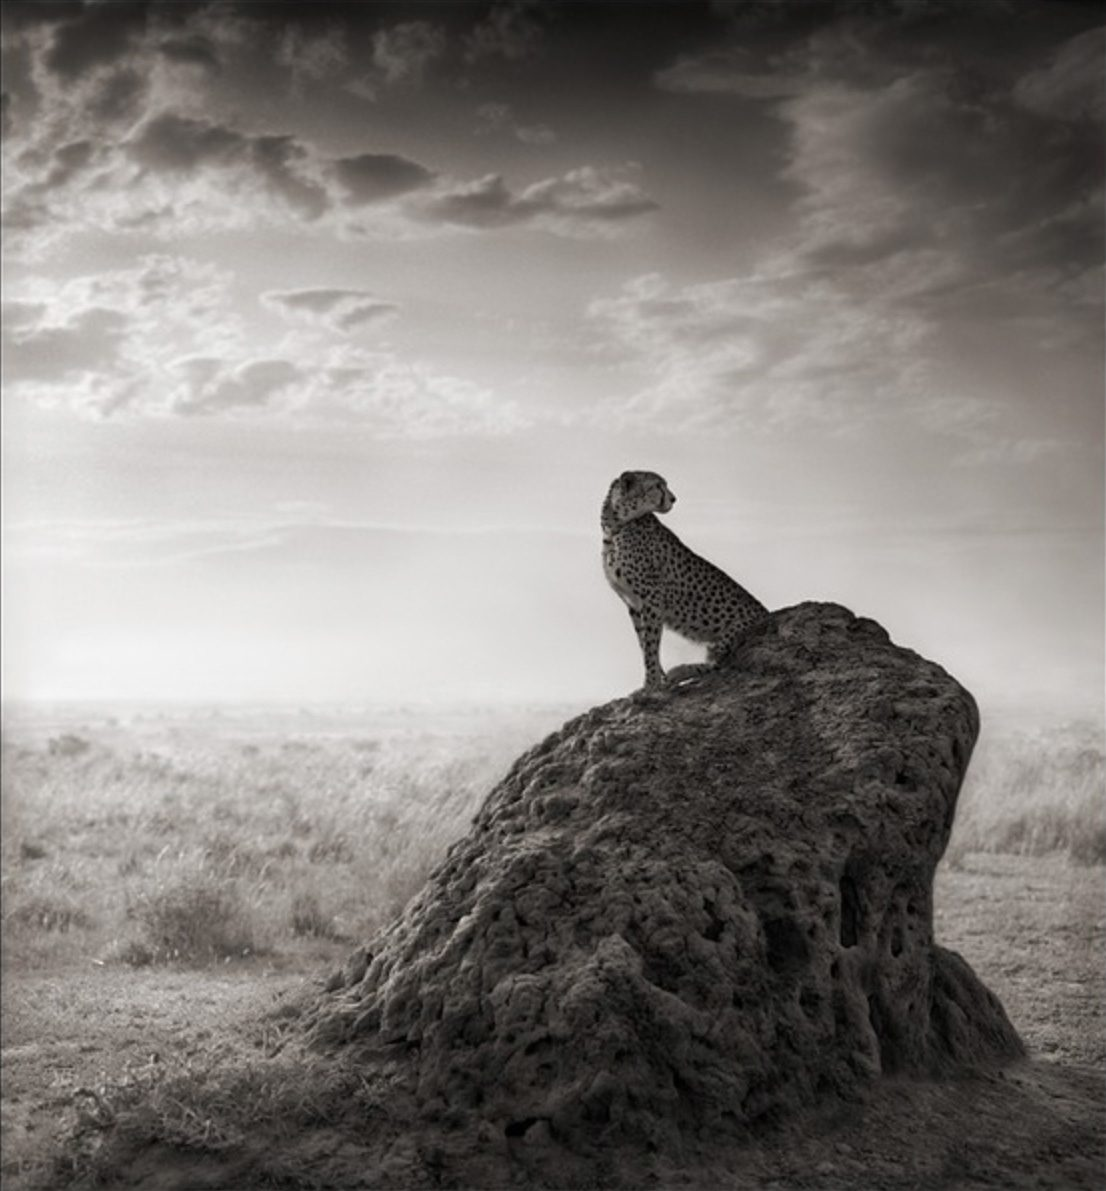 Cheetah on Termite Mound, Masai Mara